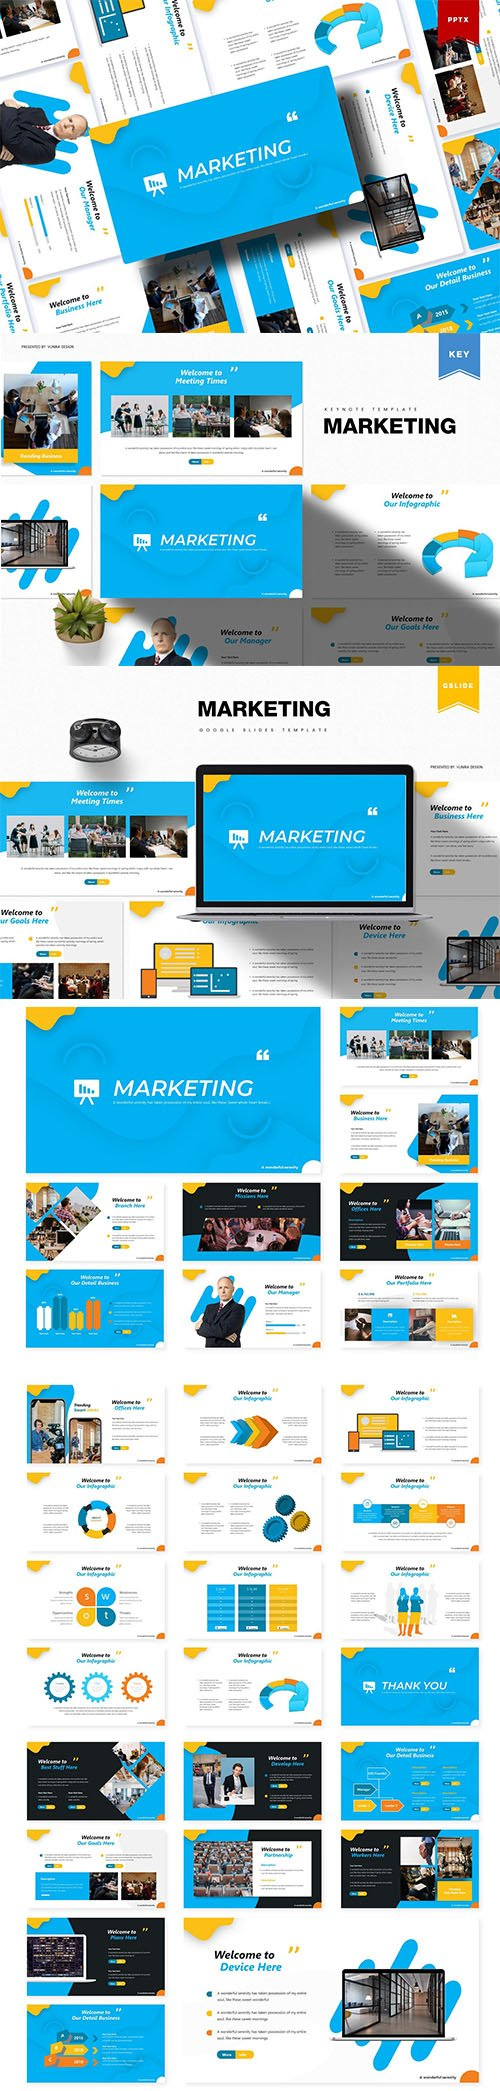 Marketing - Powerpoint, Keynote and Google Slides Templates